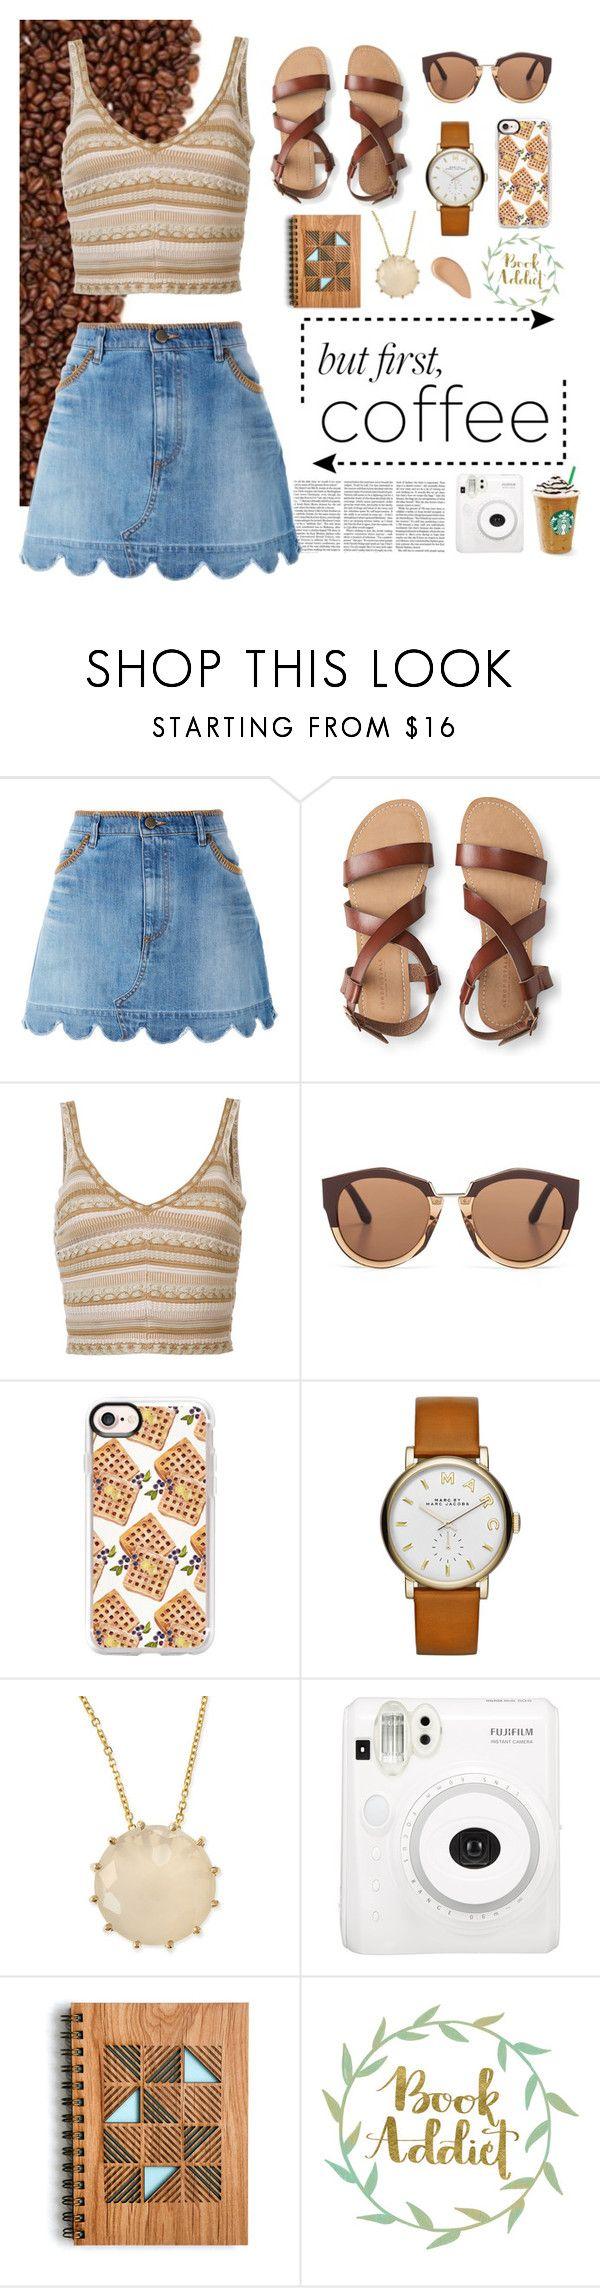 """""""don't give a frapp"""" by wondrousbeing on Polyvore featuring Victoria Beckham, RED Valentino, Aéropostale, Alice + Olivia, Marni, Casetify, Marc by Marc Jacobs, Suzanne Kalan and Shiseido"""